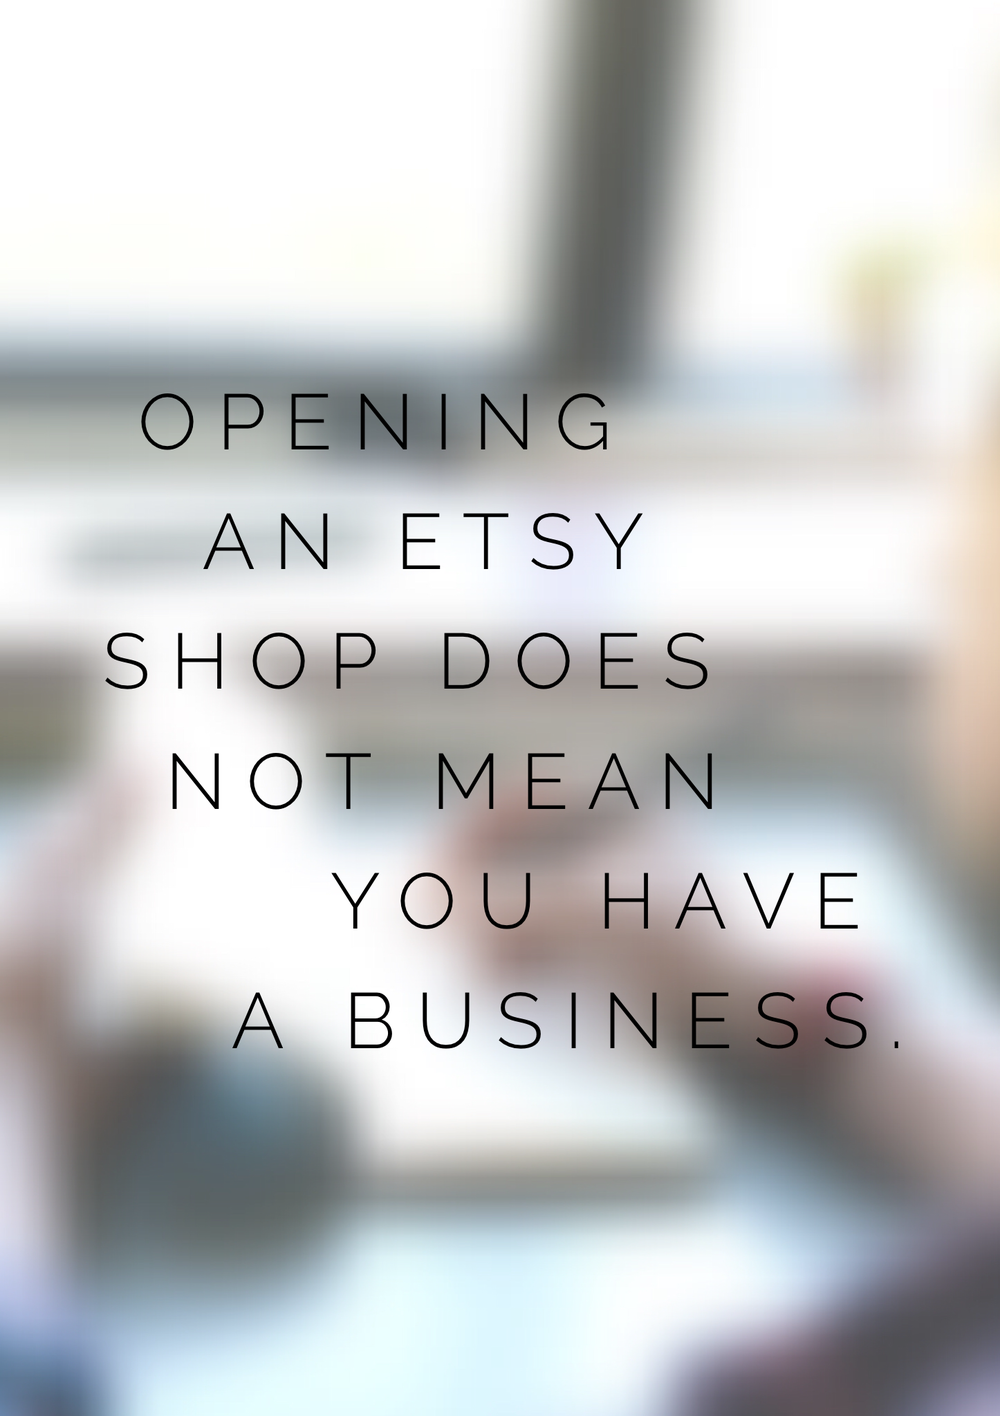 You need more than an ecommerce platform to make a business.